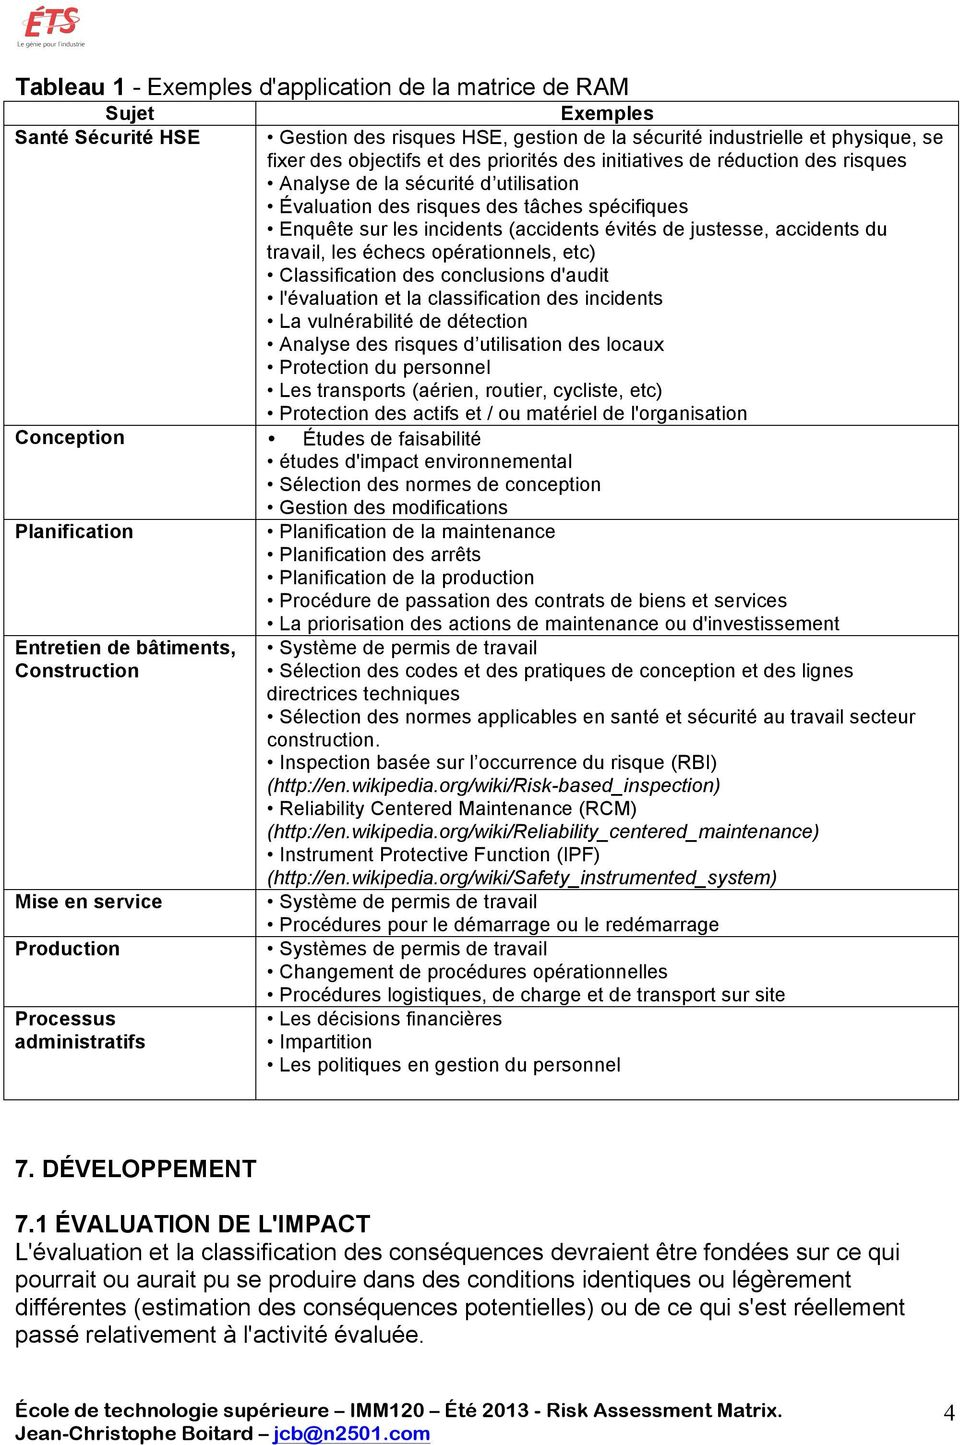 accidents du travail, les échecs opérationnels, etc) Classification des conclusions d'audit l'évaluation et la classification des incidents La vulnérabilité de détection Analyse des risques d